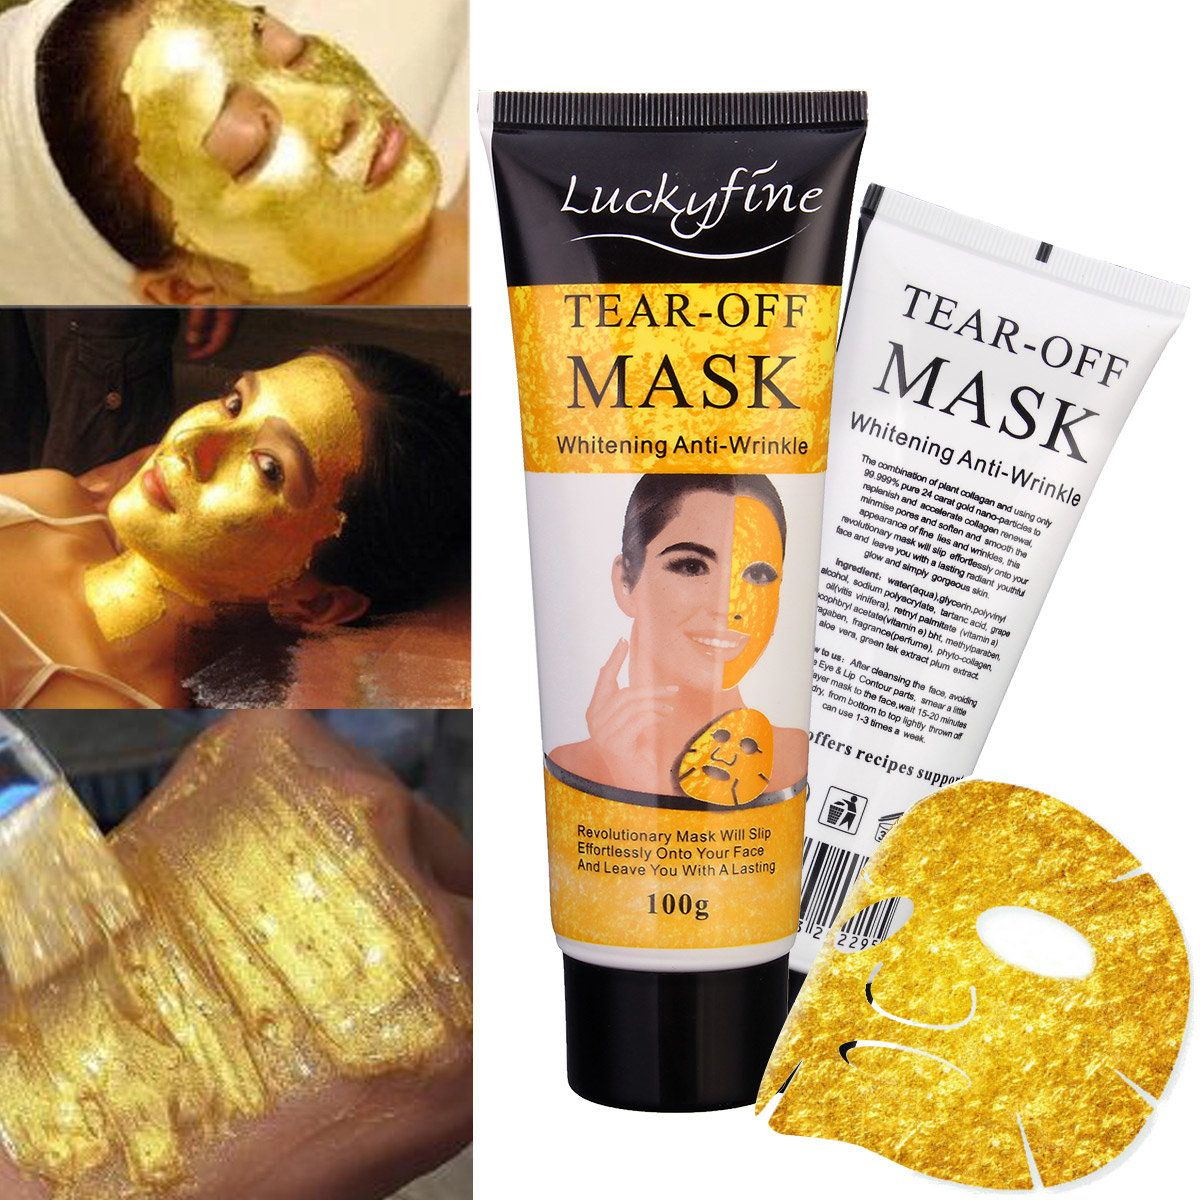 24k Gold Collagen Face Pack Anti Aging Neck Mask Remove Wrinkle Hand Wax Cleaning Blackhead Acne Mask Moisturizing Eye Patches Beauty & Health Skin Care